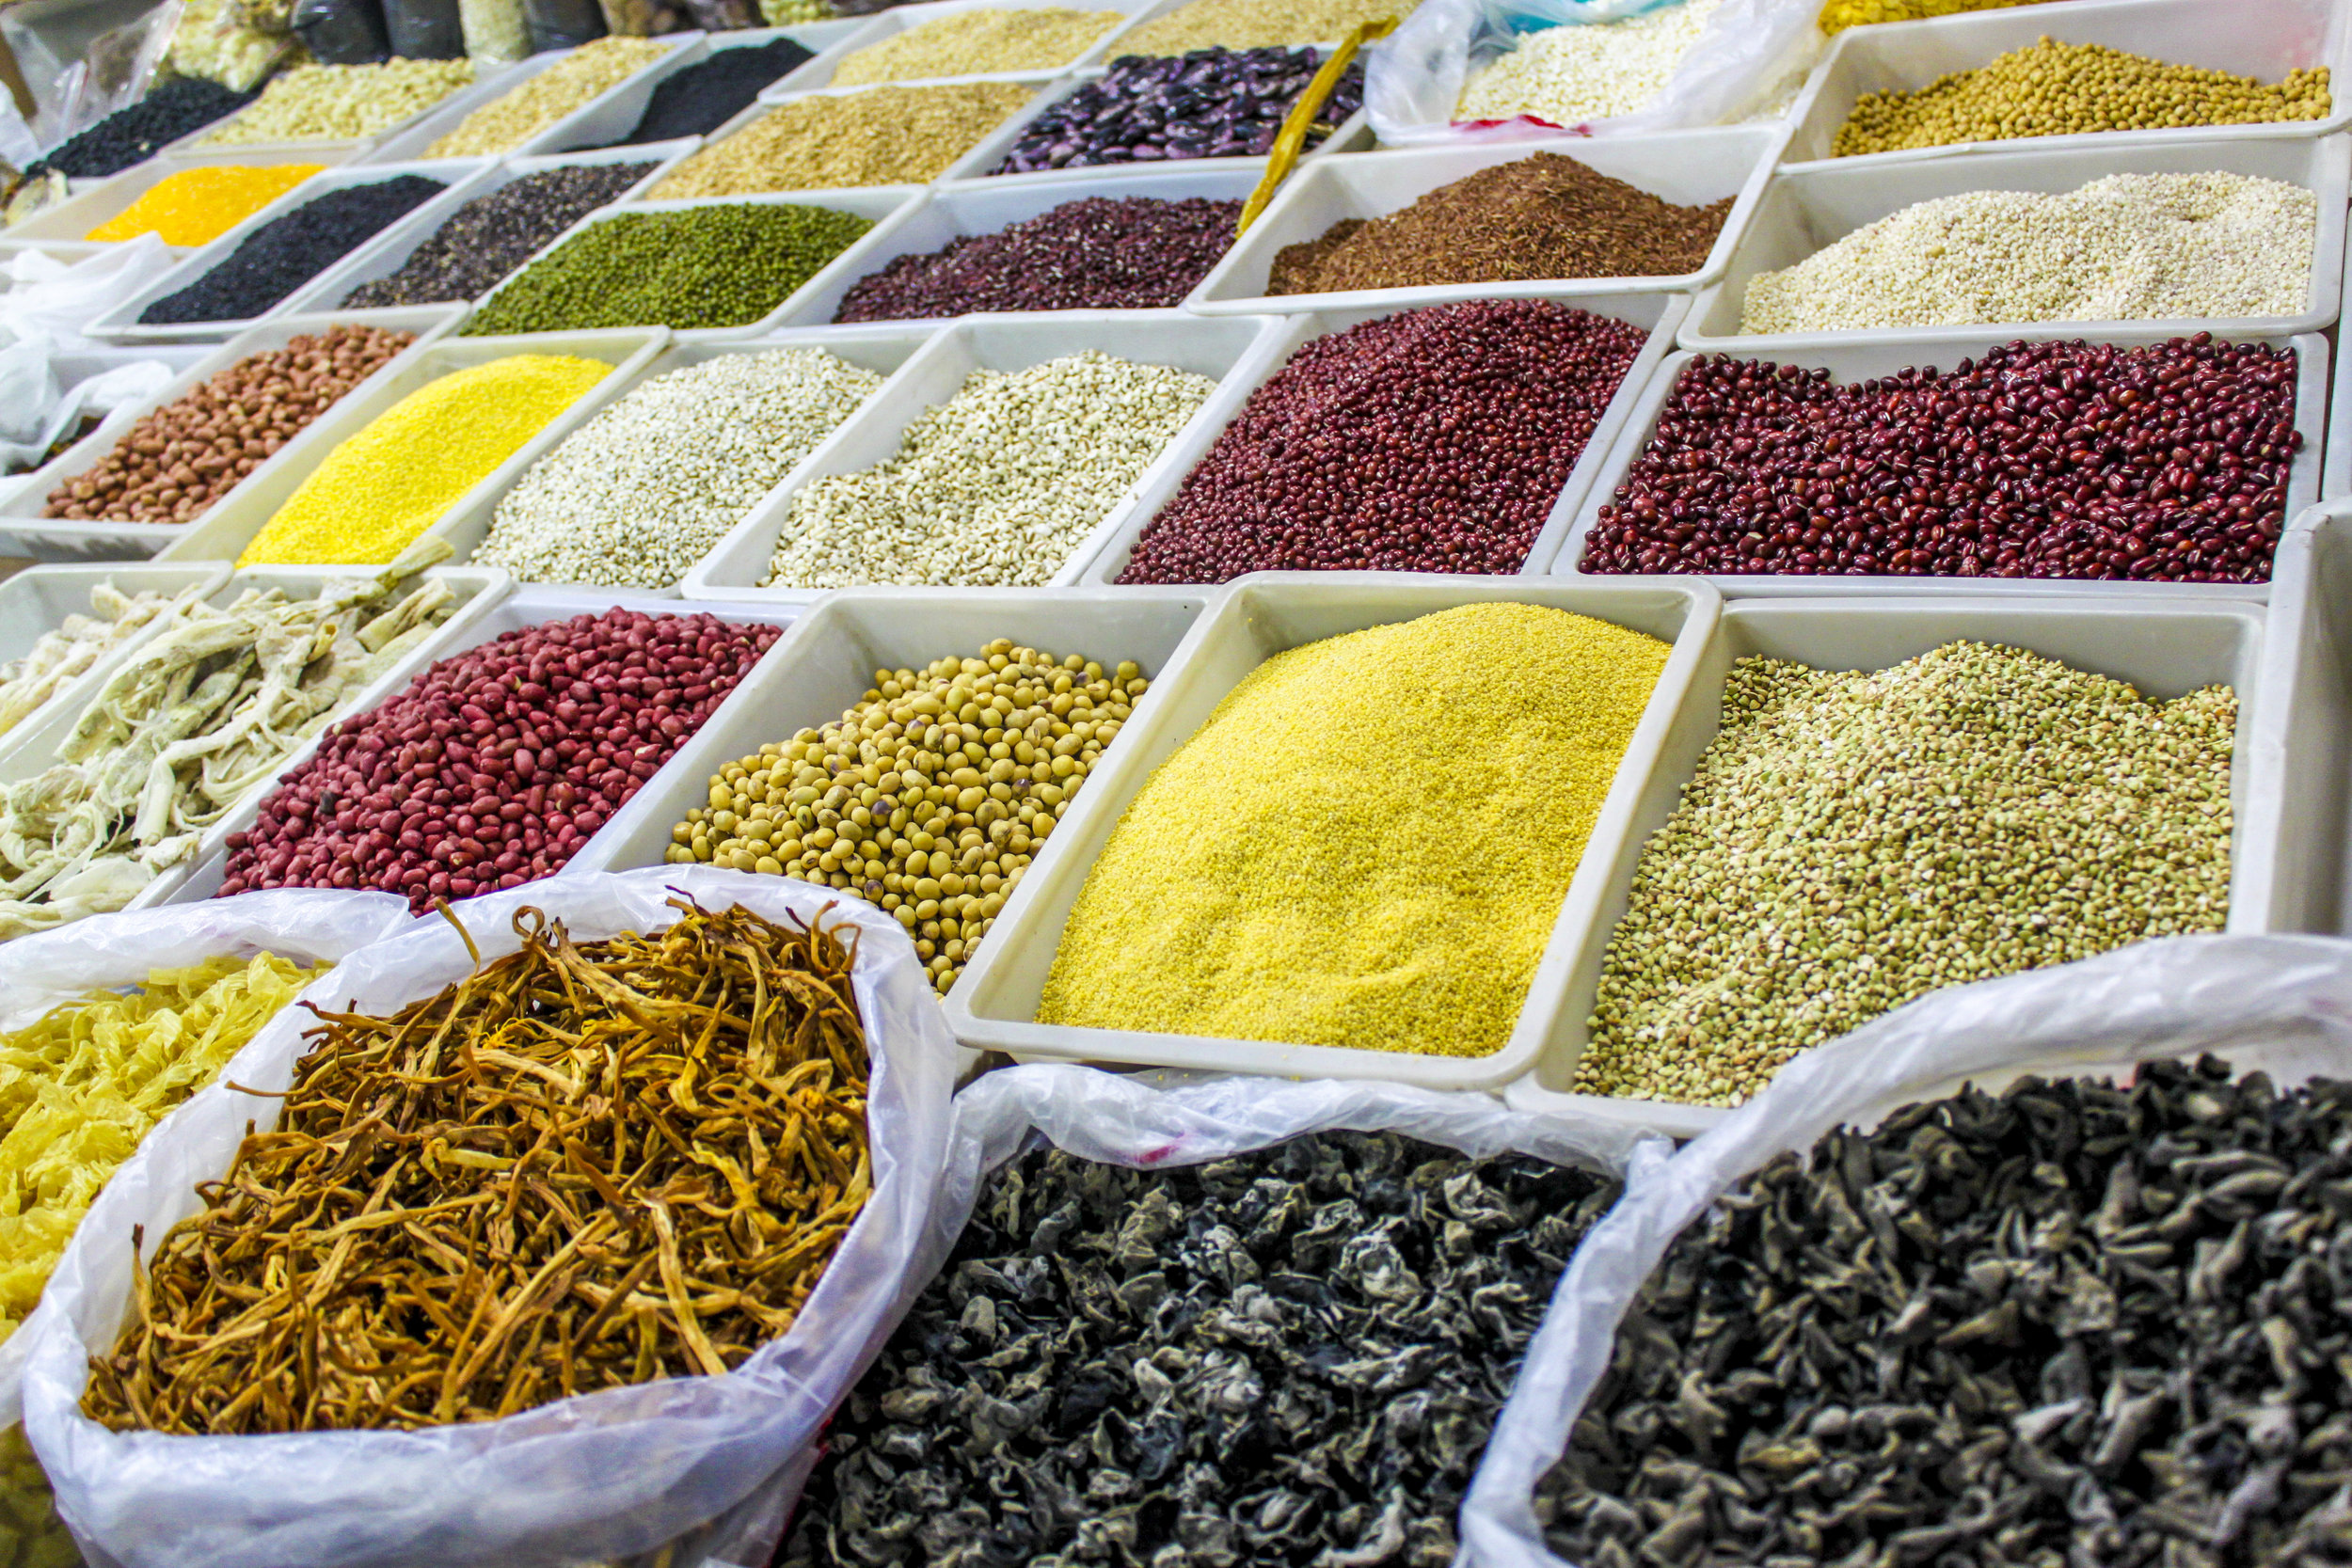 tailor-made-shanghai-sightseeing-tour-daily-food-market